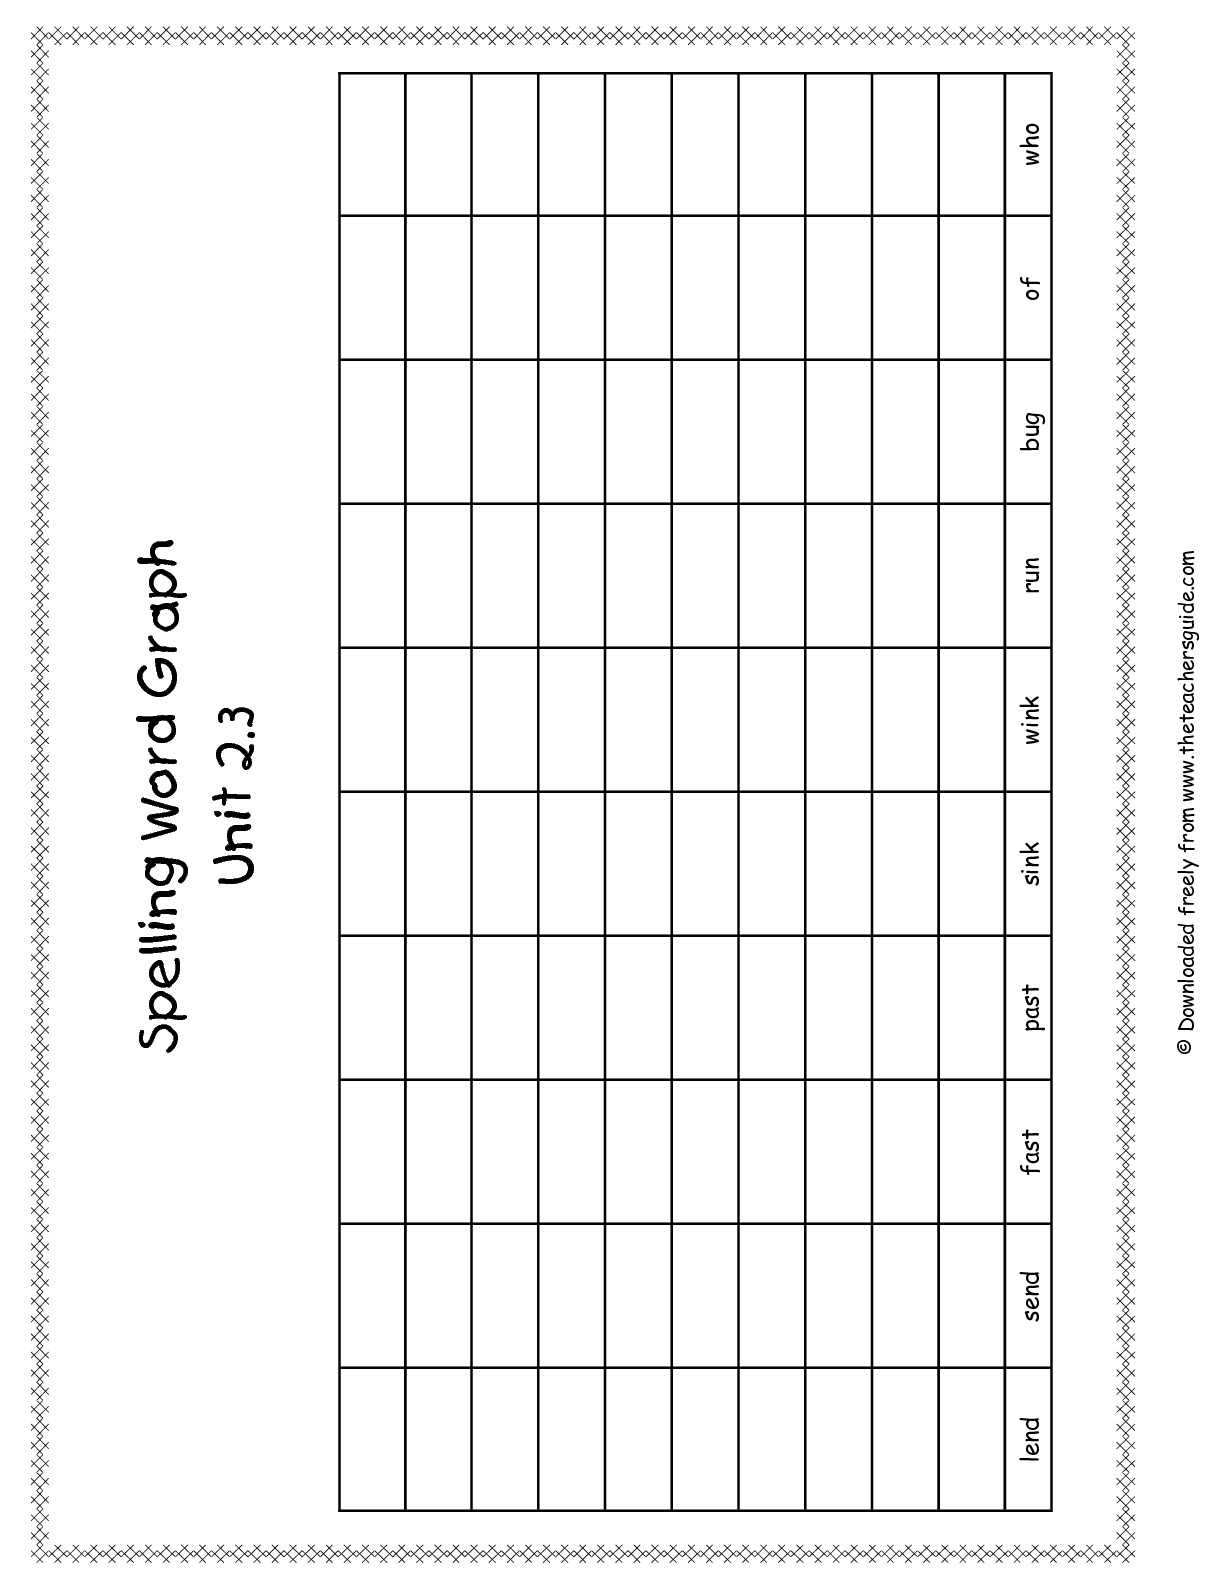 13 Best Images Of Abc Order Worksheets First Grade